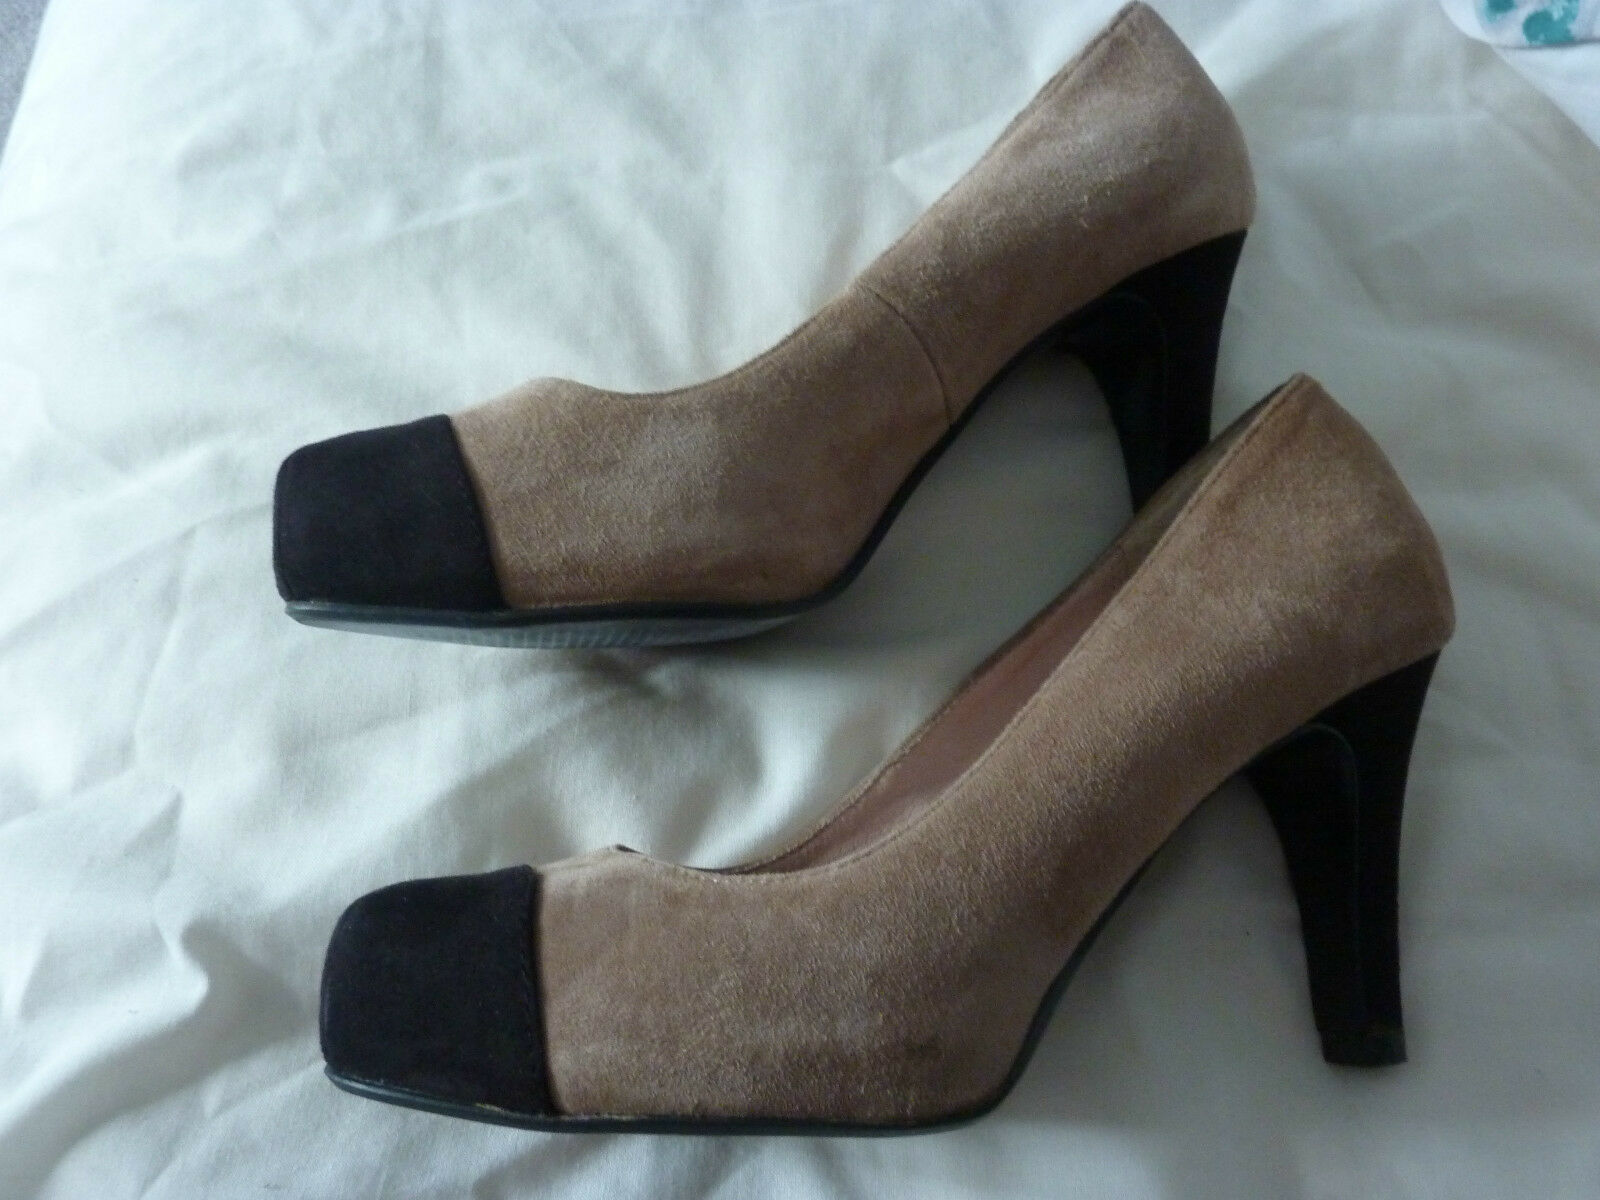 Next Leather Collection size 5 beige suede court shoes, stiletto heel